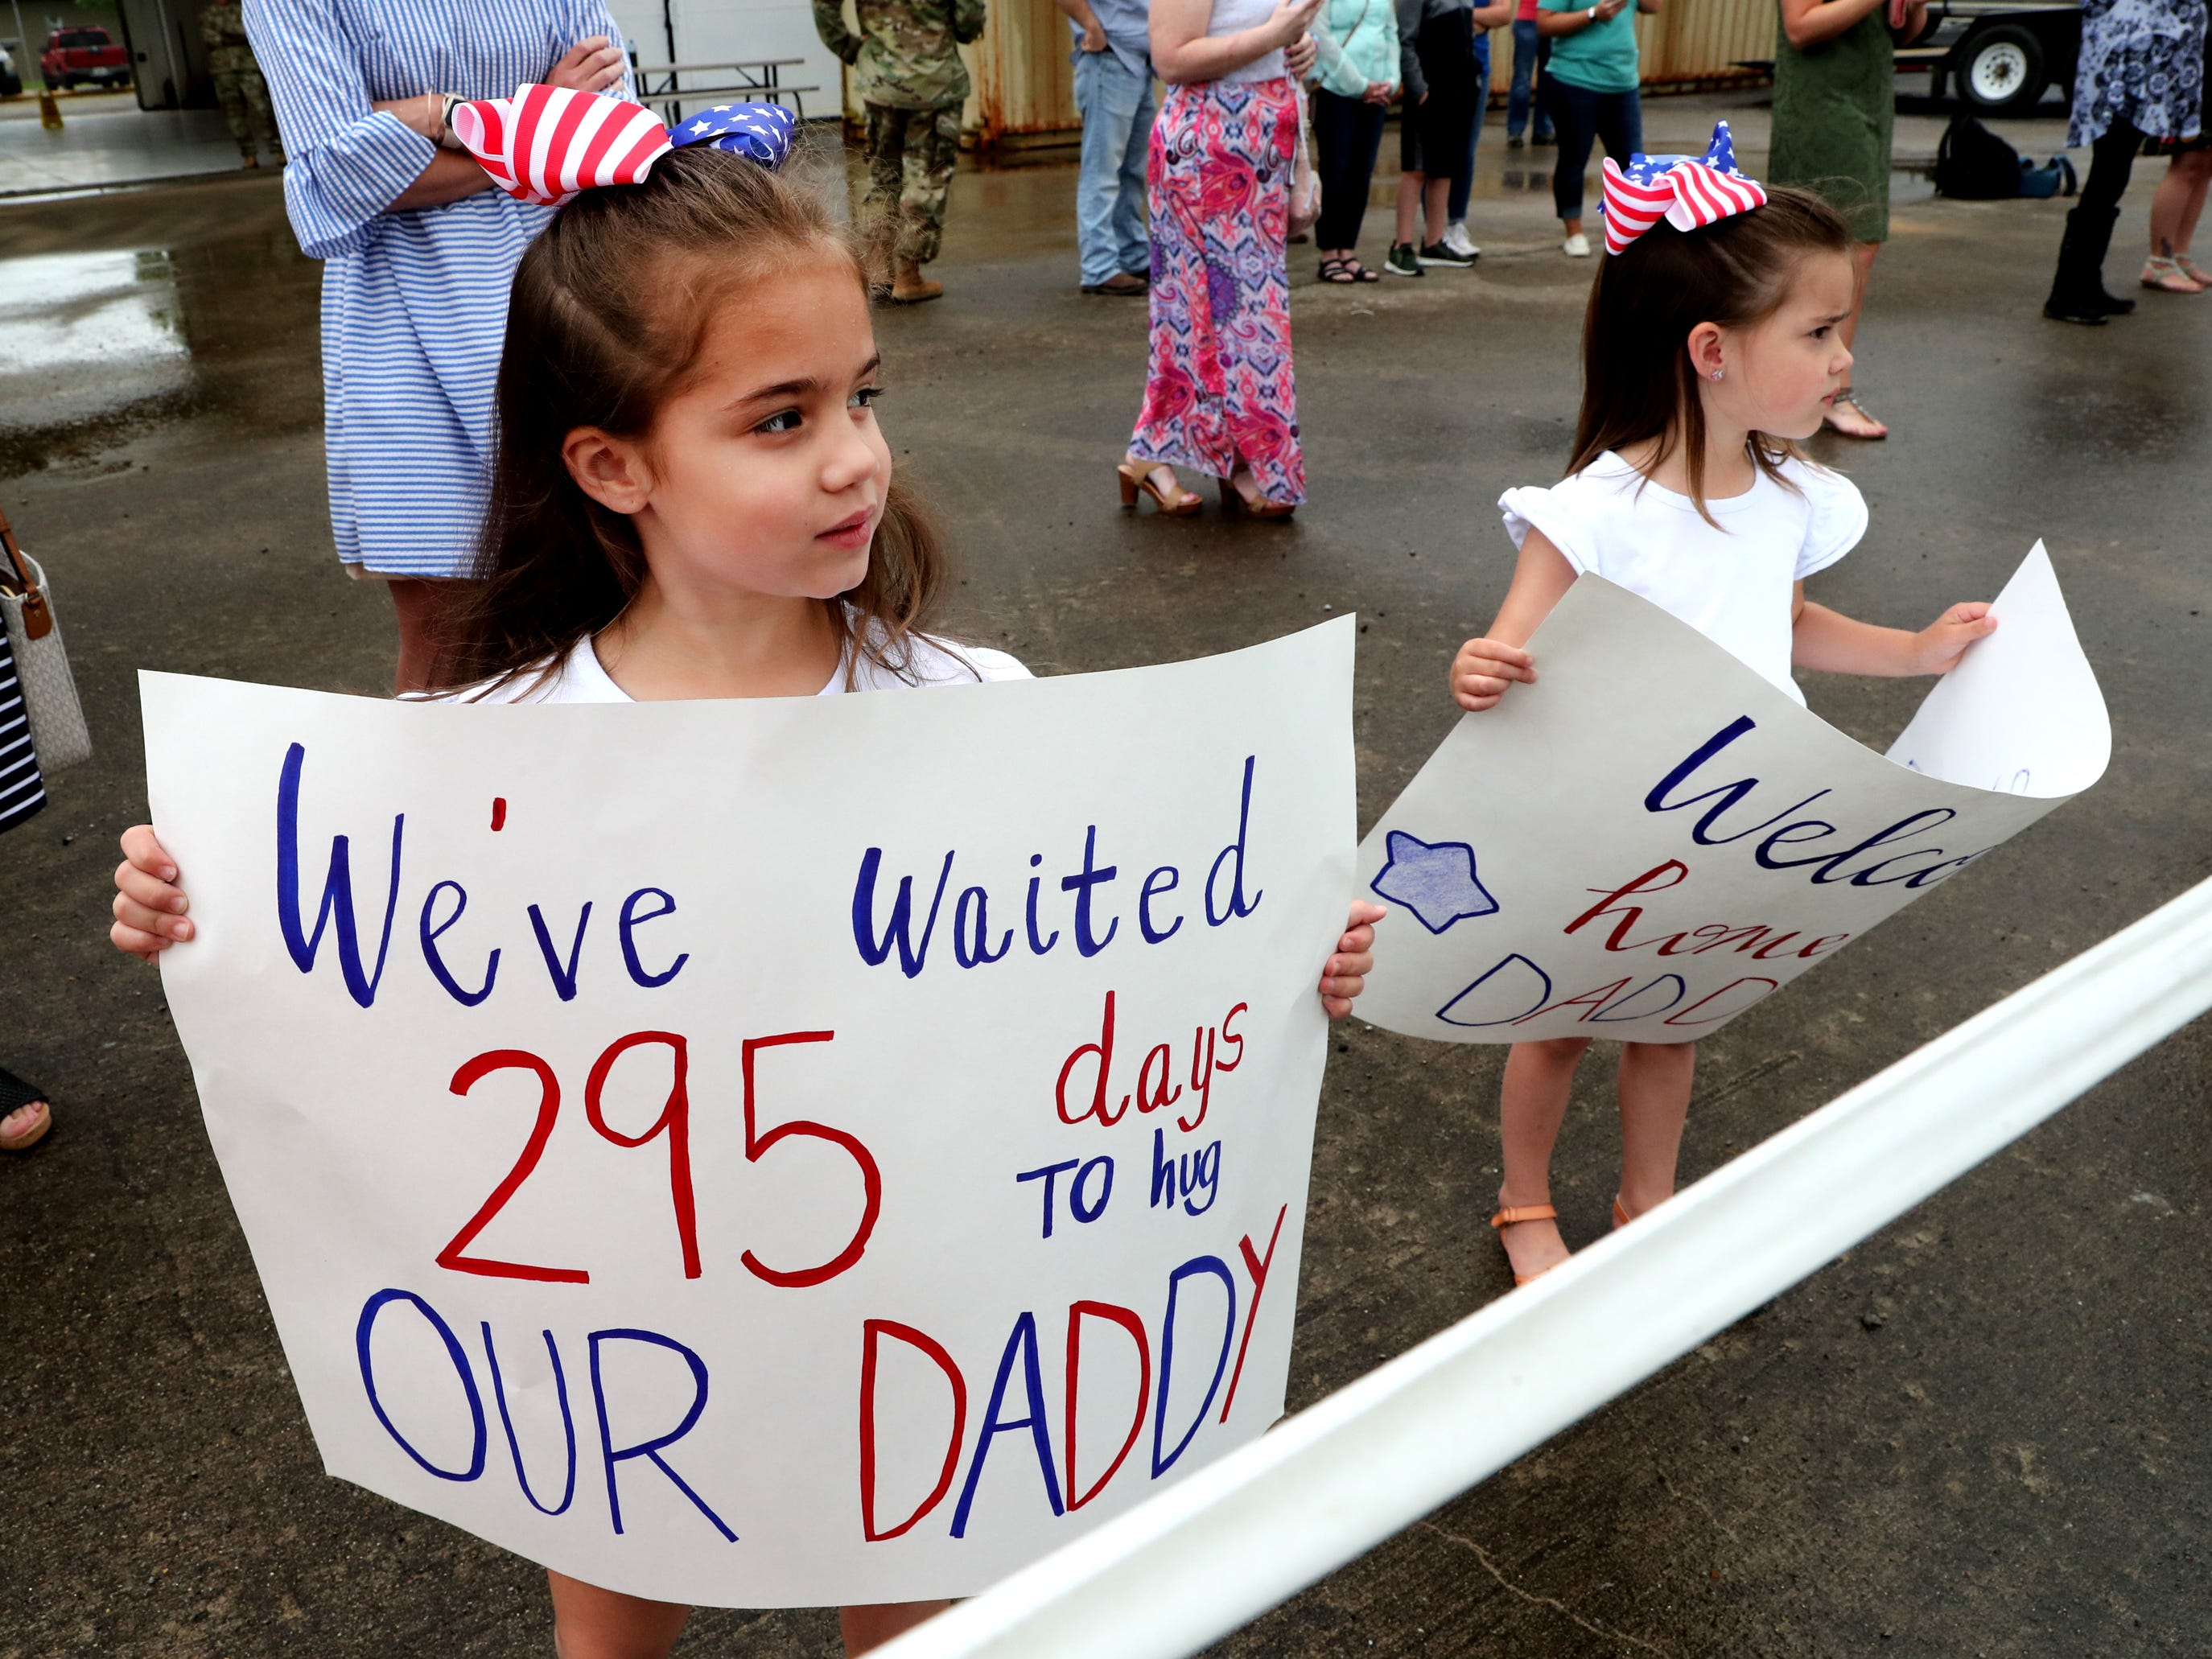 Riley Fleming, 6, left and Harper Fleming, 4, both hold up signs as they wait for their dad Staff Sgt. Kyle Fleming with the 278th ACR, to return to the Volunteer Training Site in Smyrna, from a 9 month overseas deployment on Thursday, May 9, 2019.